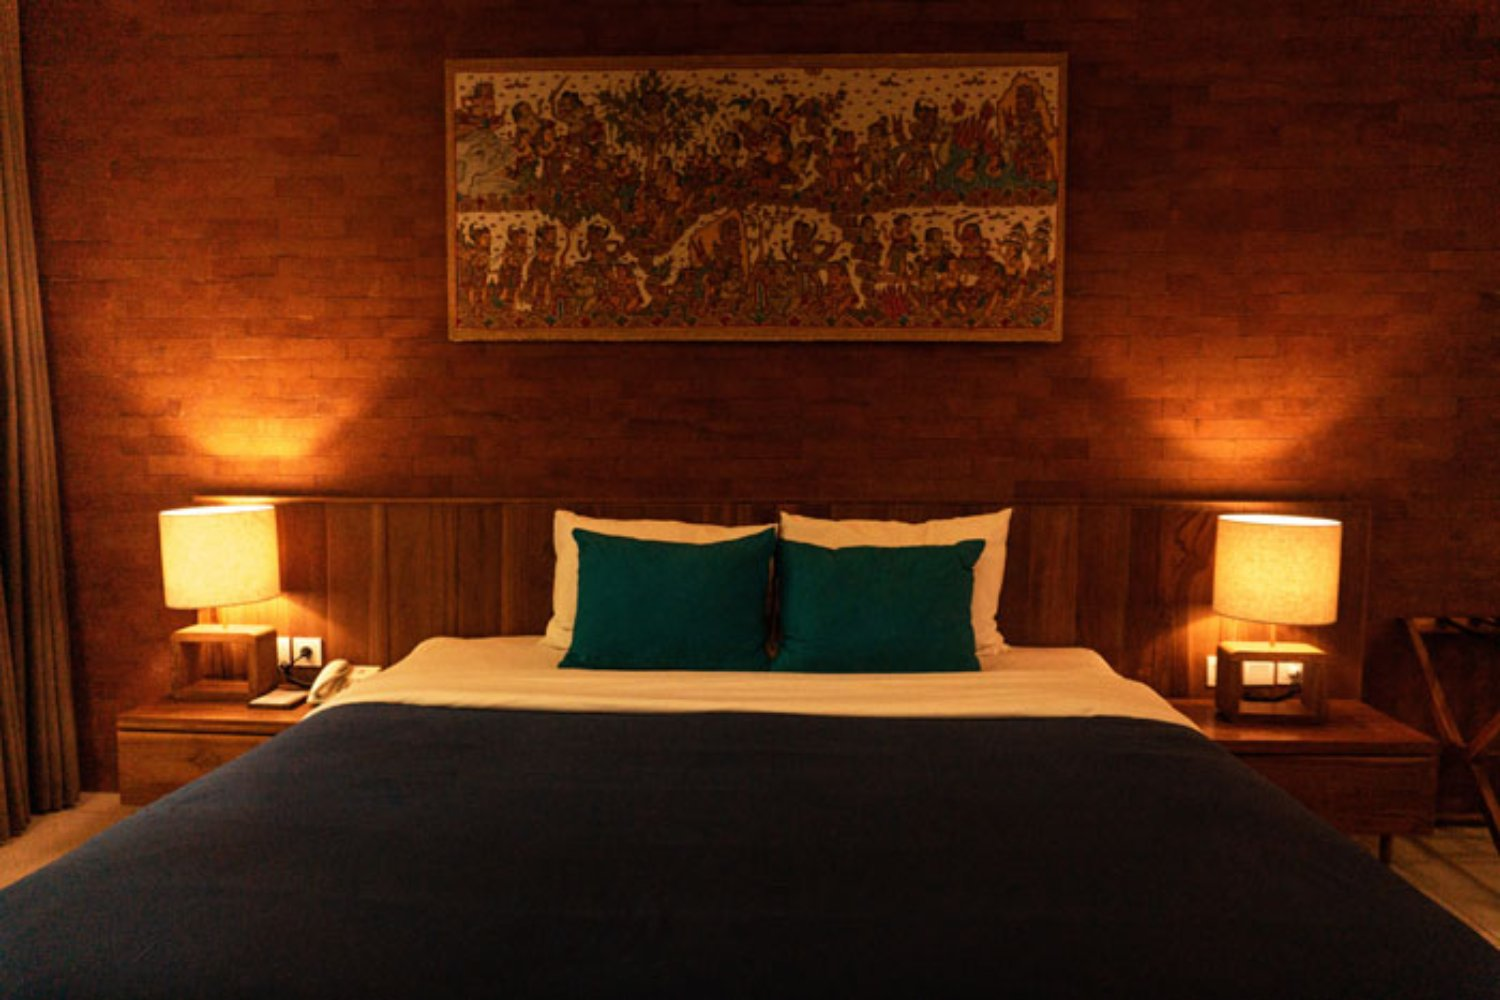 How Much To Tip Housekeeping Bali